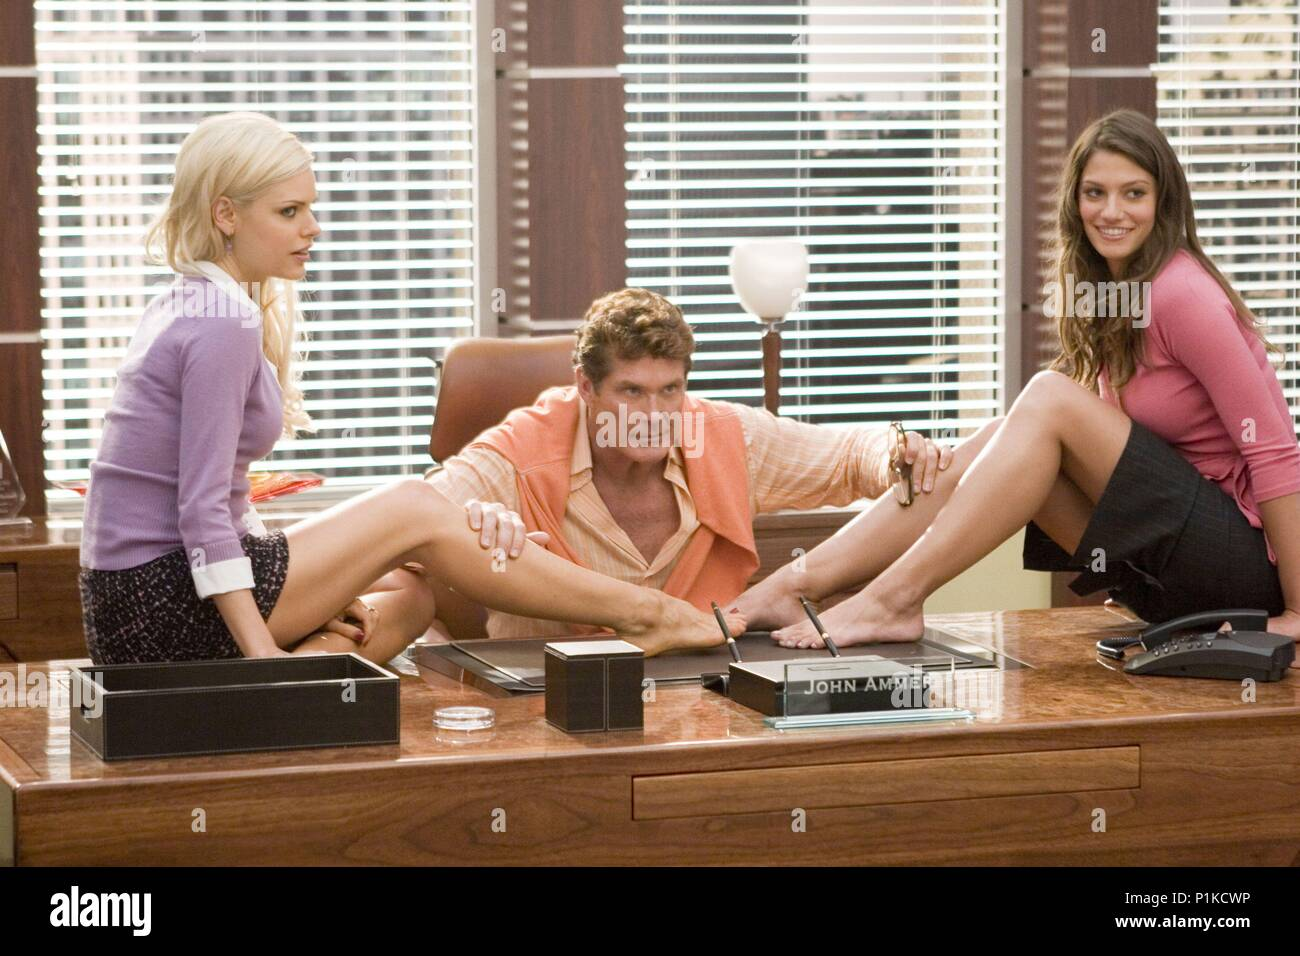 Original Film Title: CLICK.  English Title: CLICK.  Film Director: FRANK CORACI.  Year: 2006.  Stars: DAVID HASSELHOFF; MICHELLE LOMBARDO; SOPHIE MONK. Credit: COLUMBIA PICTURES / BENNETT, TRACY / Album - Stock Image